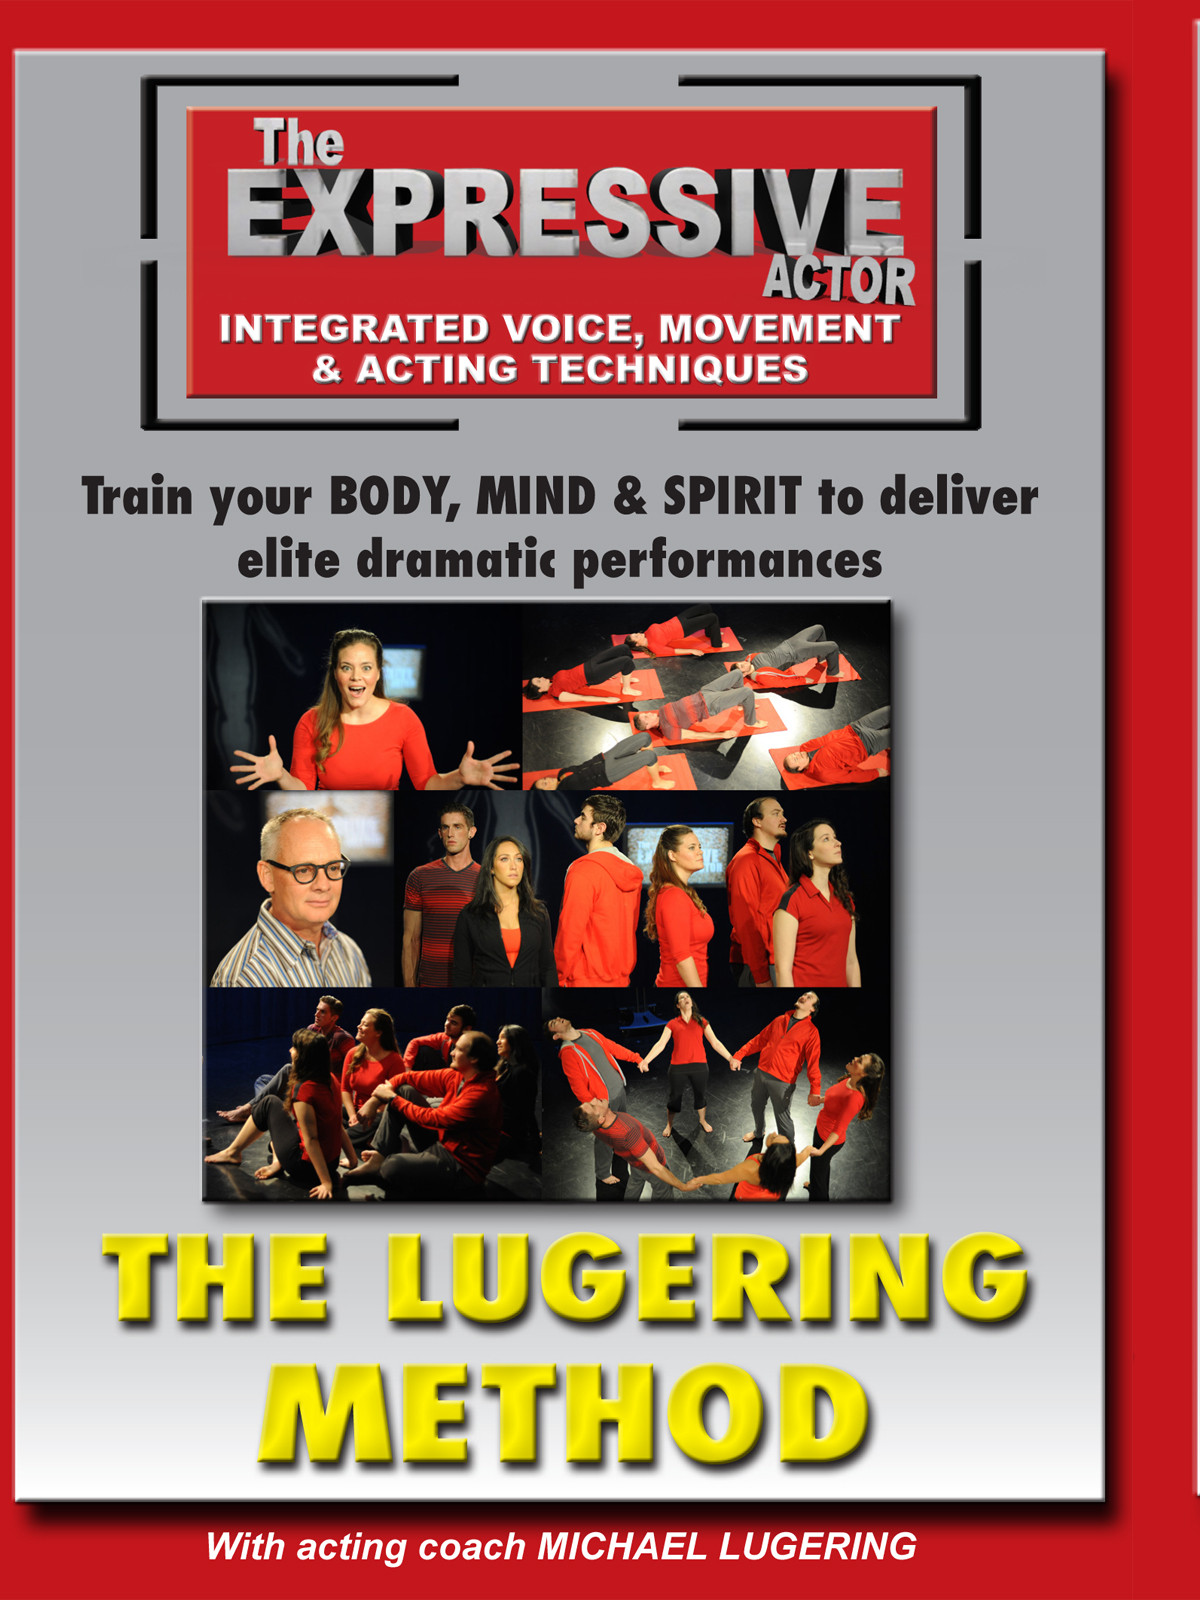 F2801 - Expressive Actor The Lugering Method